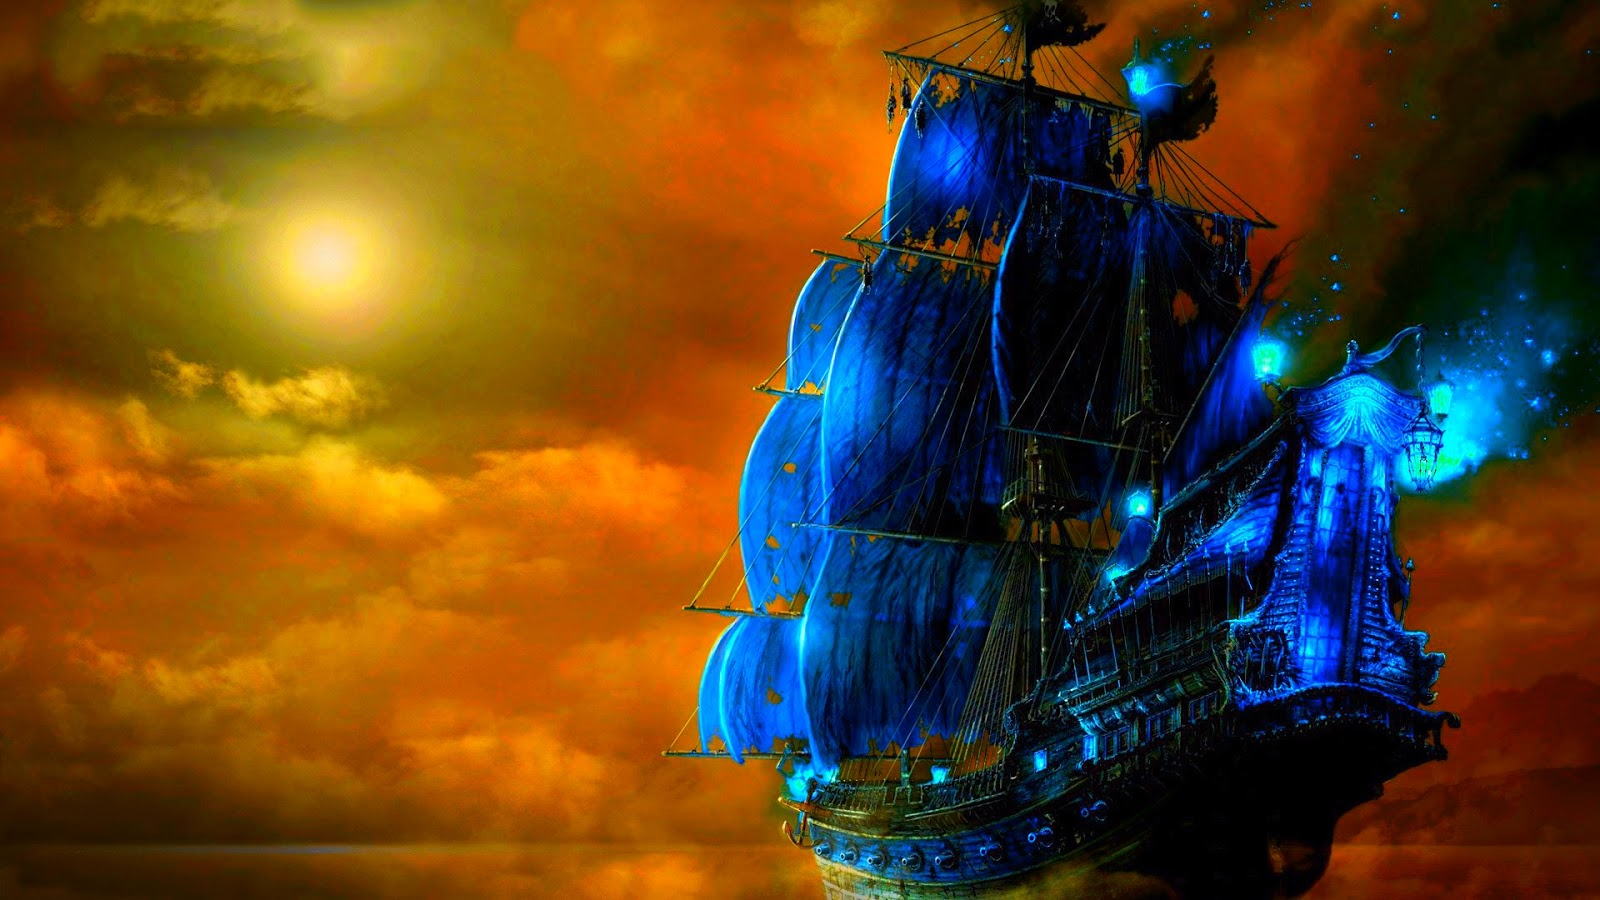 44 3d Pirate Ship Wallpaper On Wallpapersafari